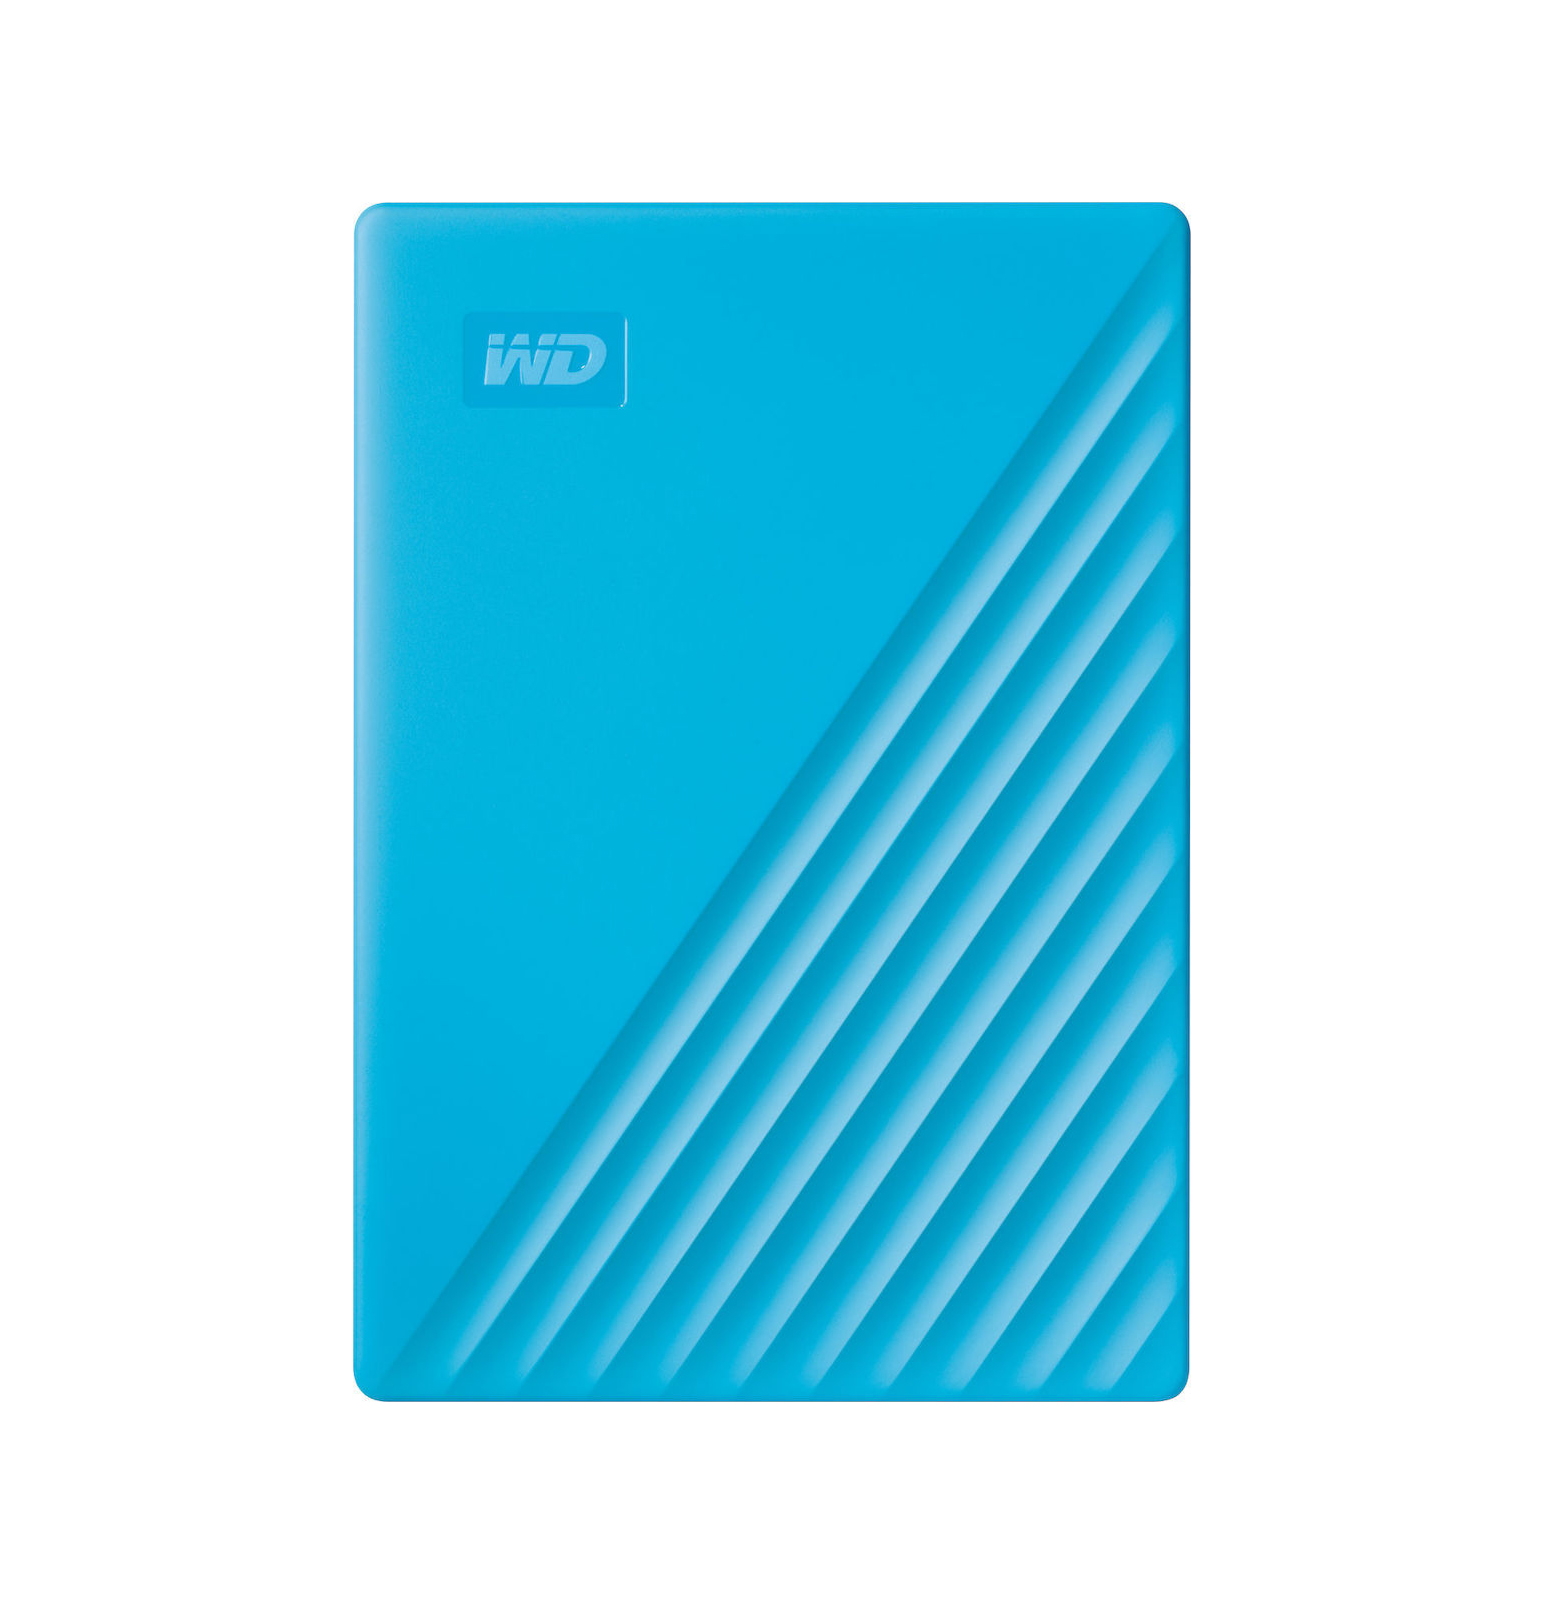 Western Digital My Passport 2TB 2019 WDBYVG0020BBL-WESN Εξωτερικός Σκληρός Δίσκος* USB 3.0 Sky